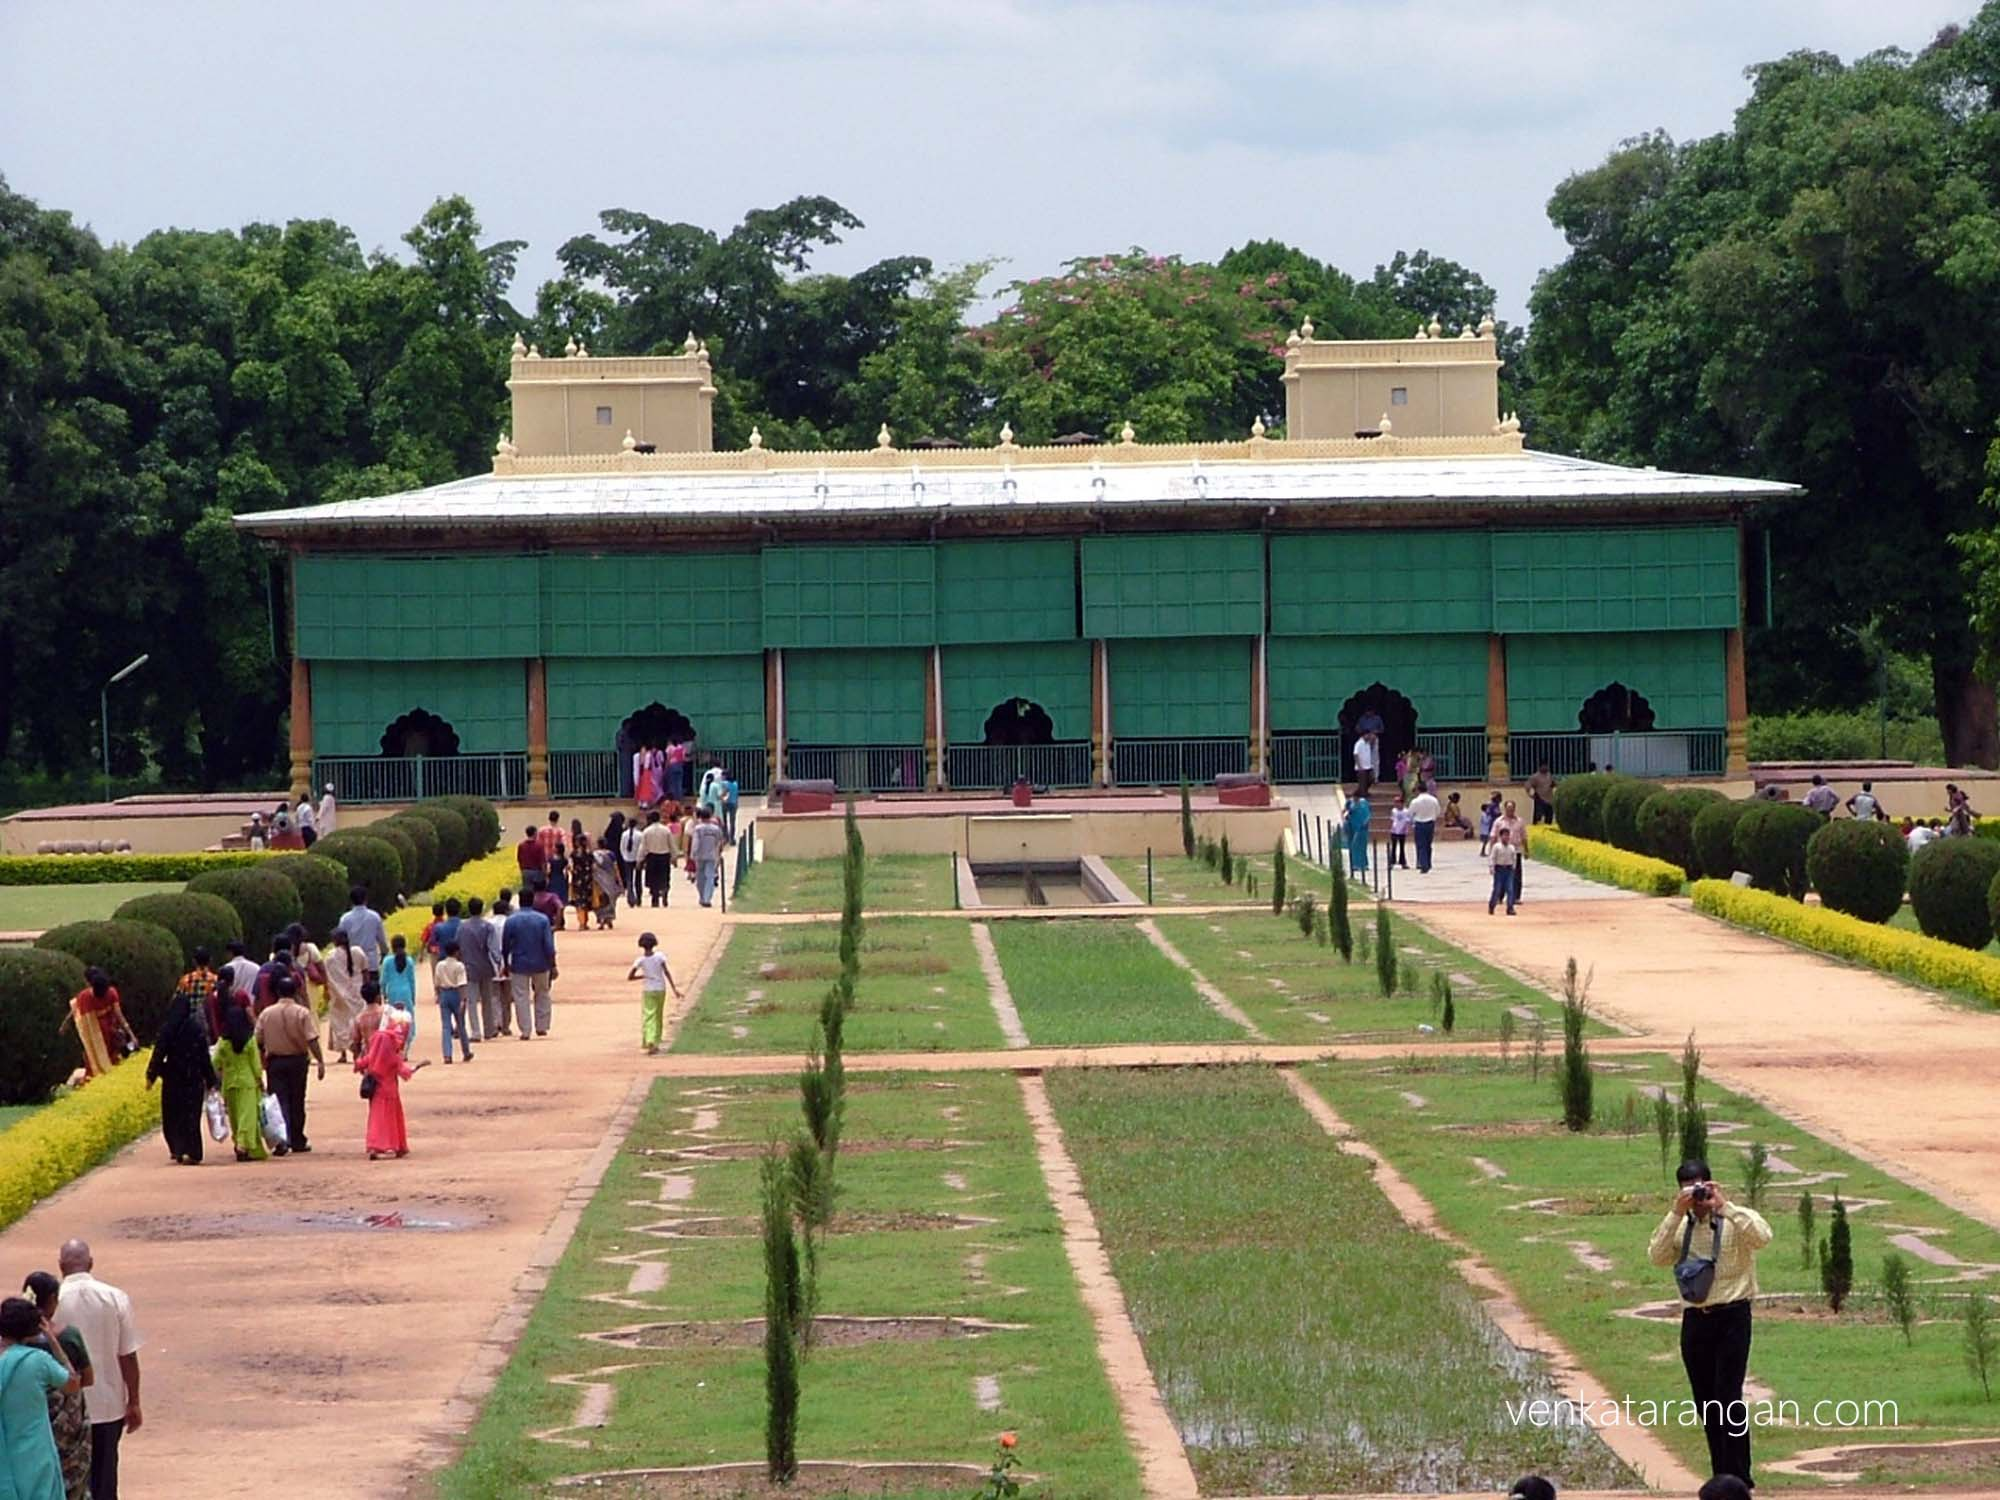 Daria Daulat Bagh palace (literally 'Garden of the Wealth') in Srirangapatna